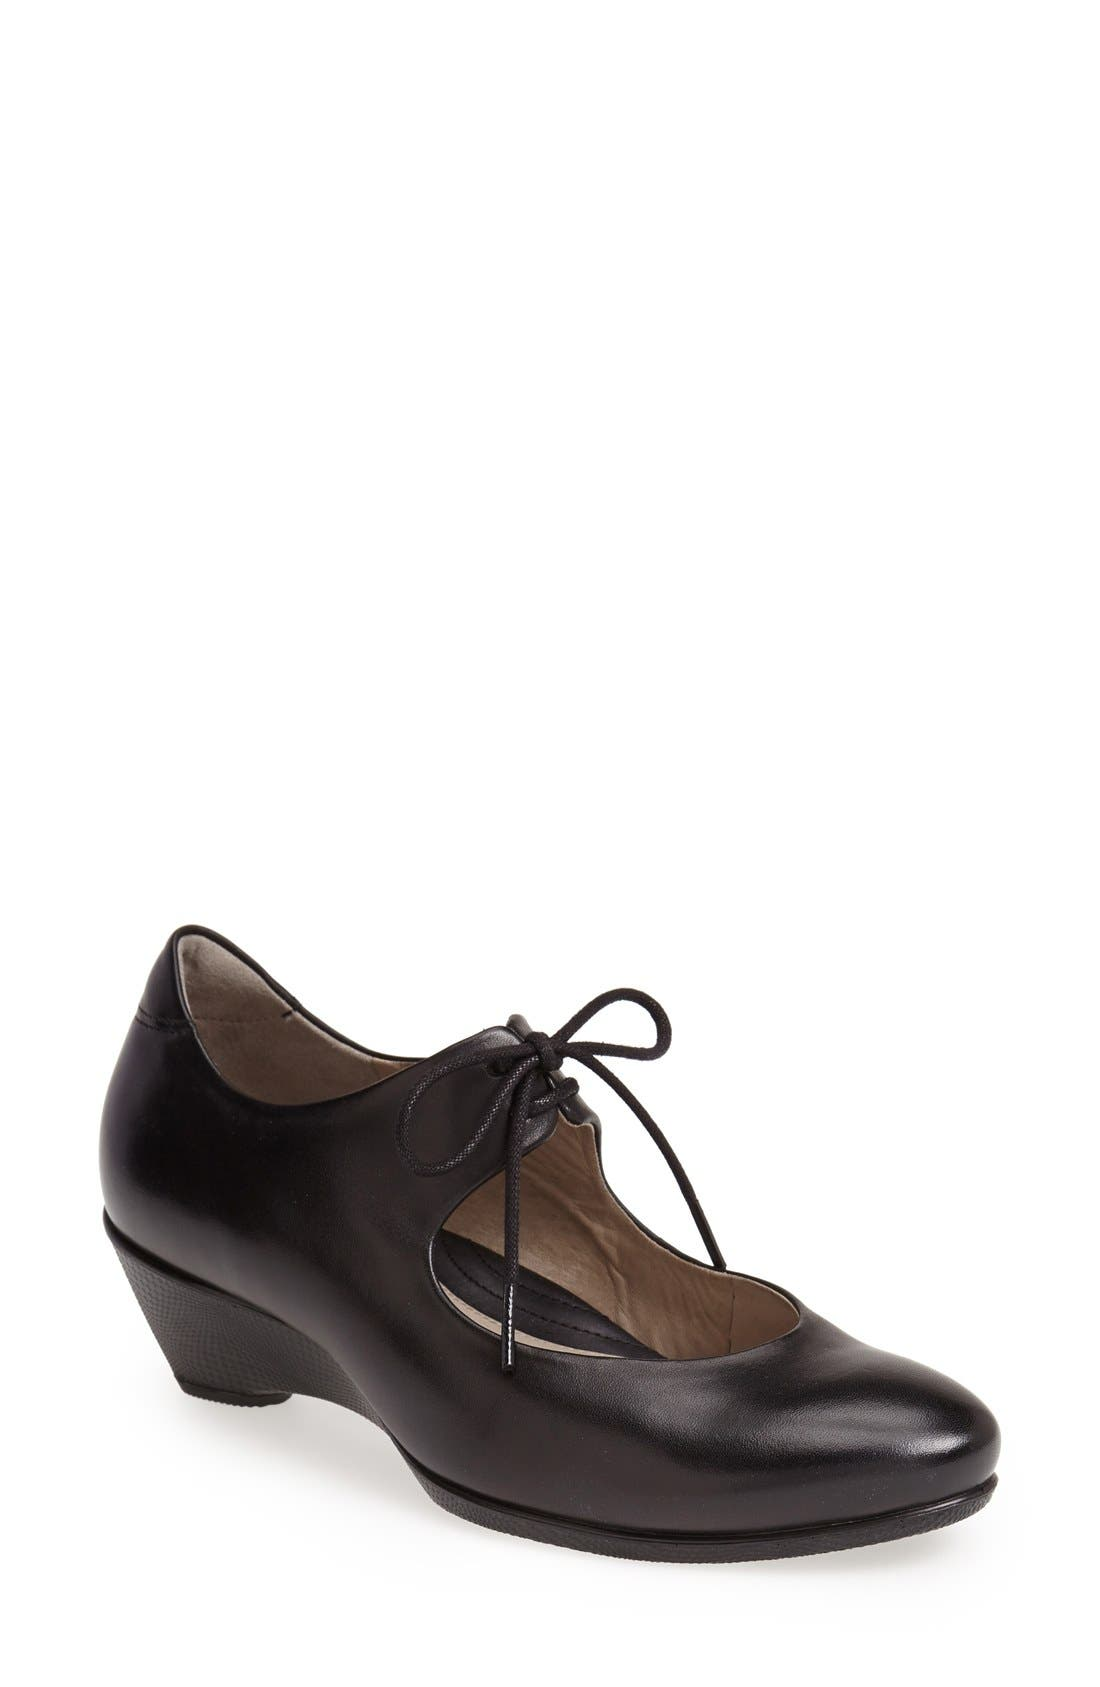 Alternate Image 1 Selected - ECCO 'Sculptured 45' Leather Mary Jane Wedge Pump (Women)